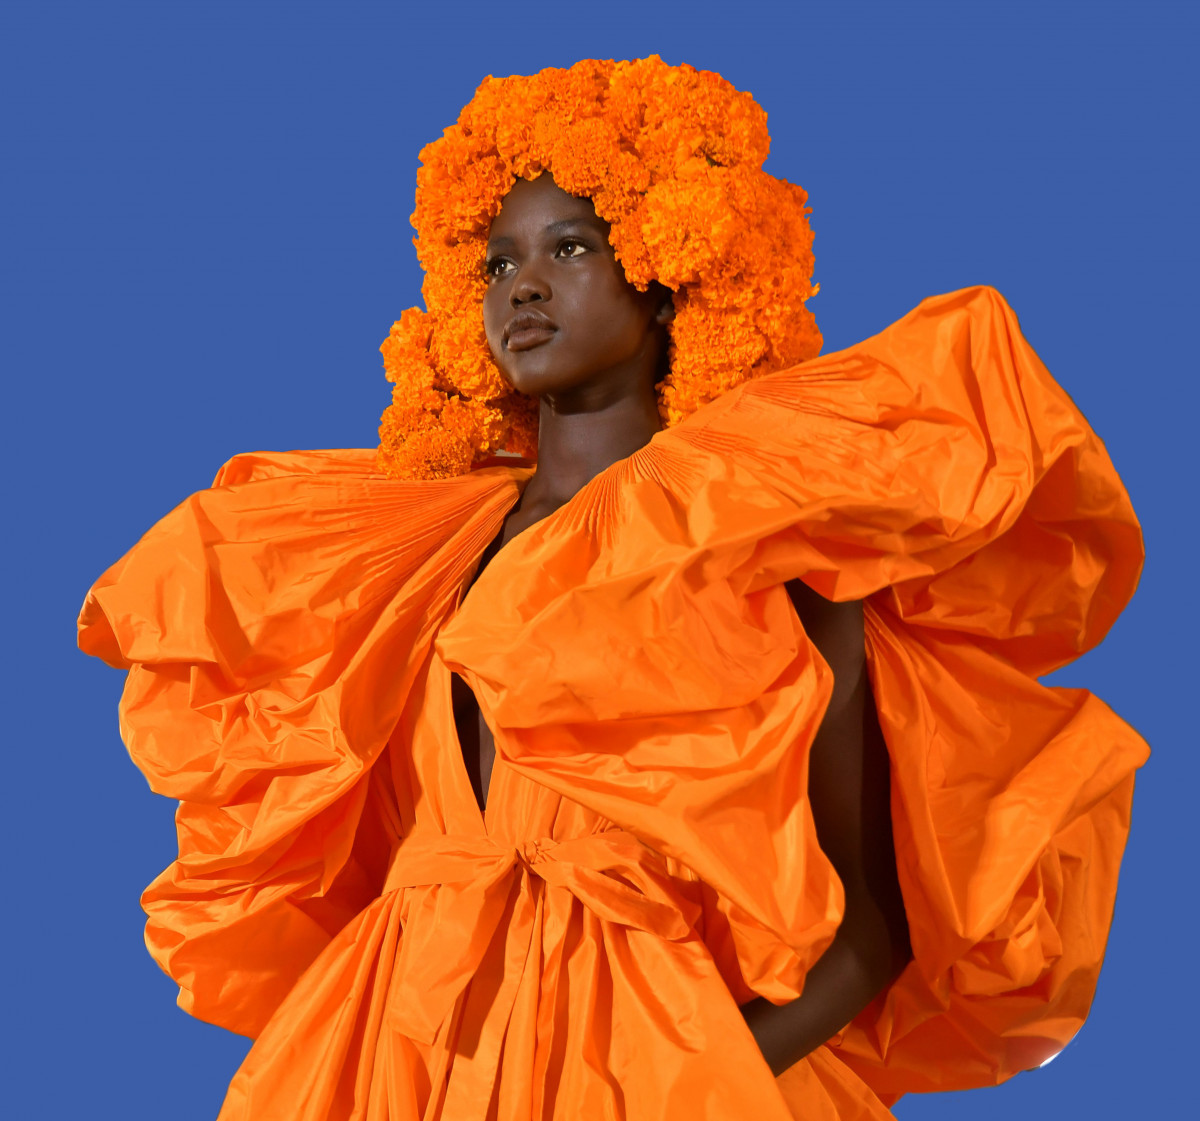 Fashion in Colour | Kunstmuseum Den Haag